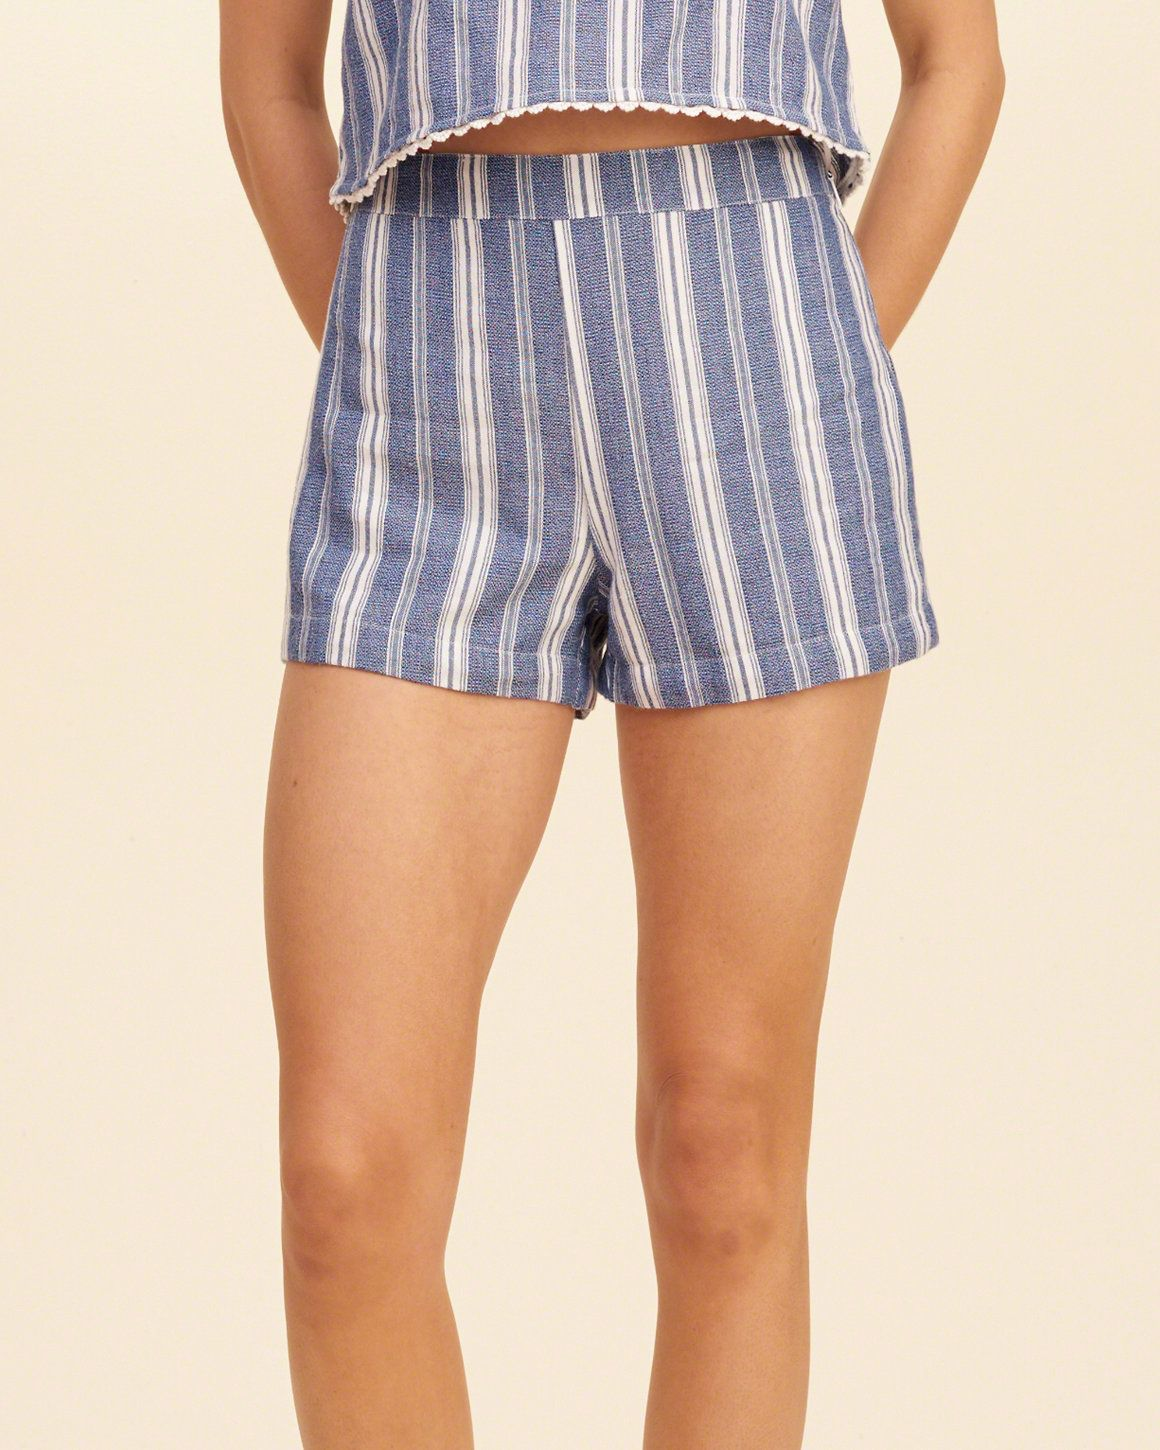 Girls structured tap shorts girls new arrivals hollisterco